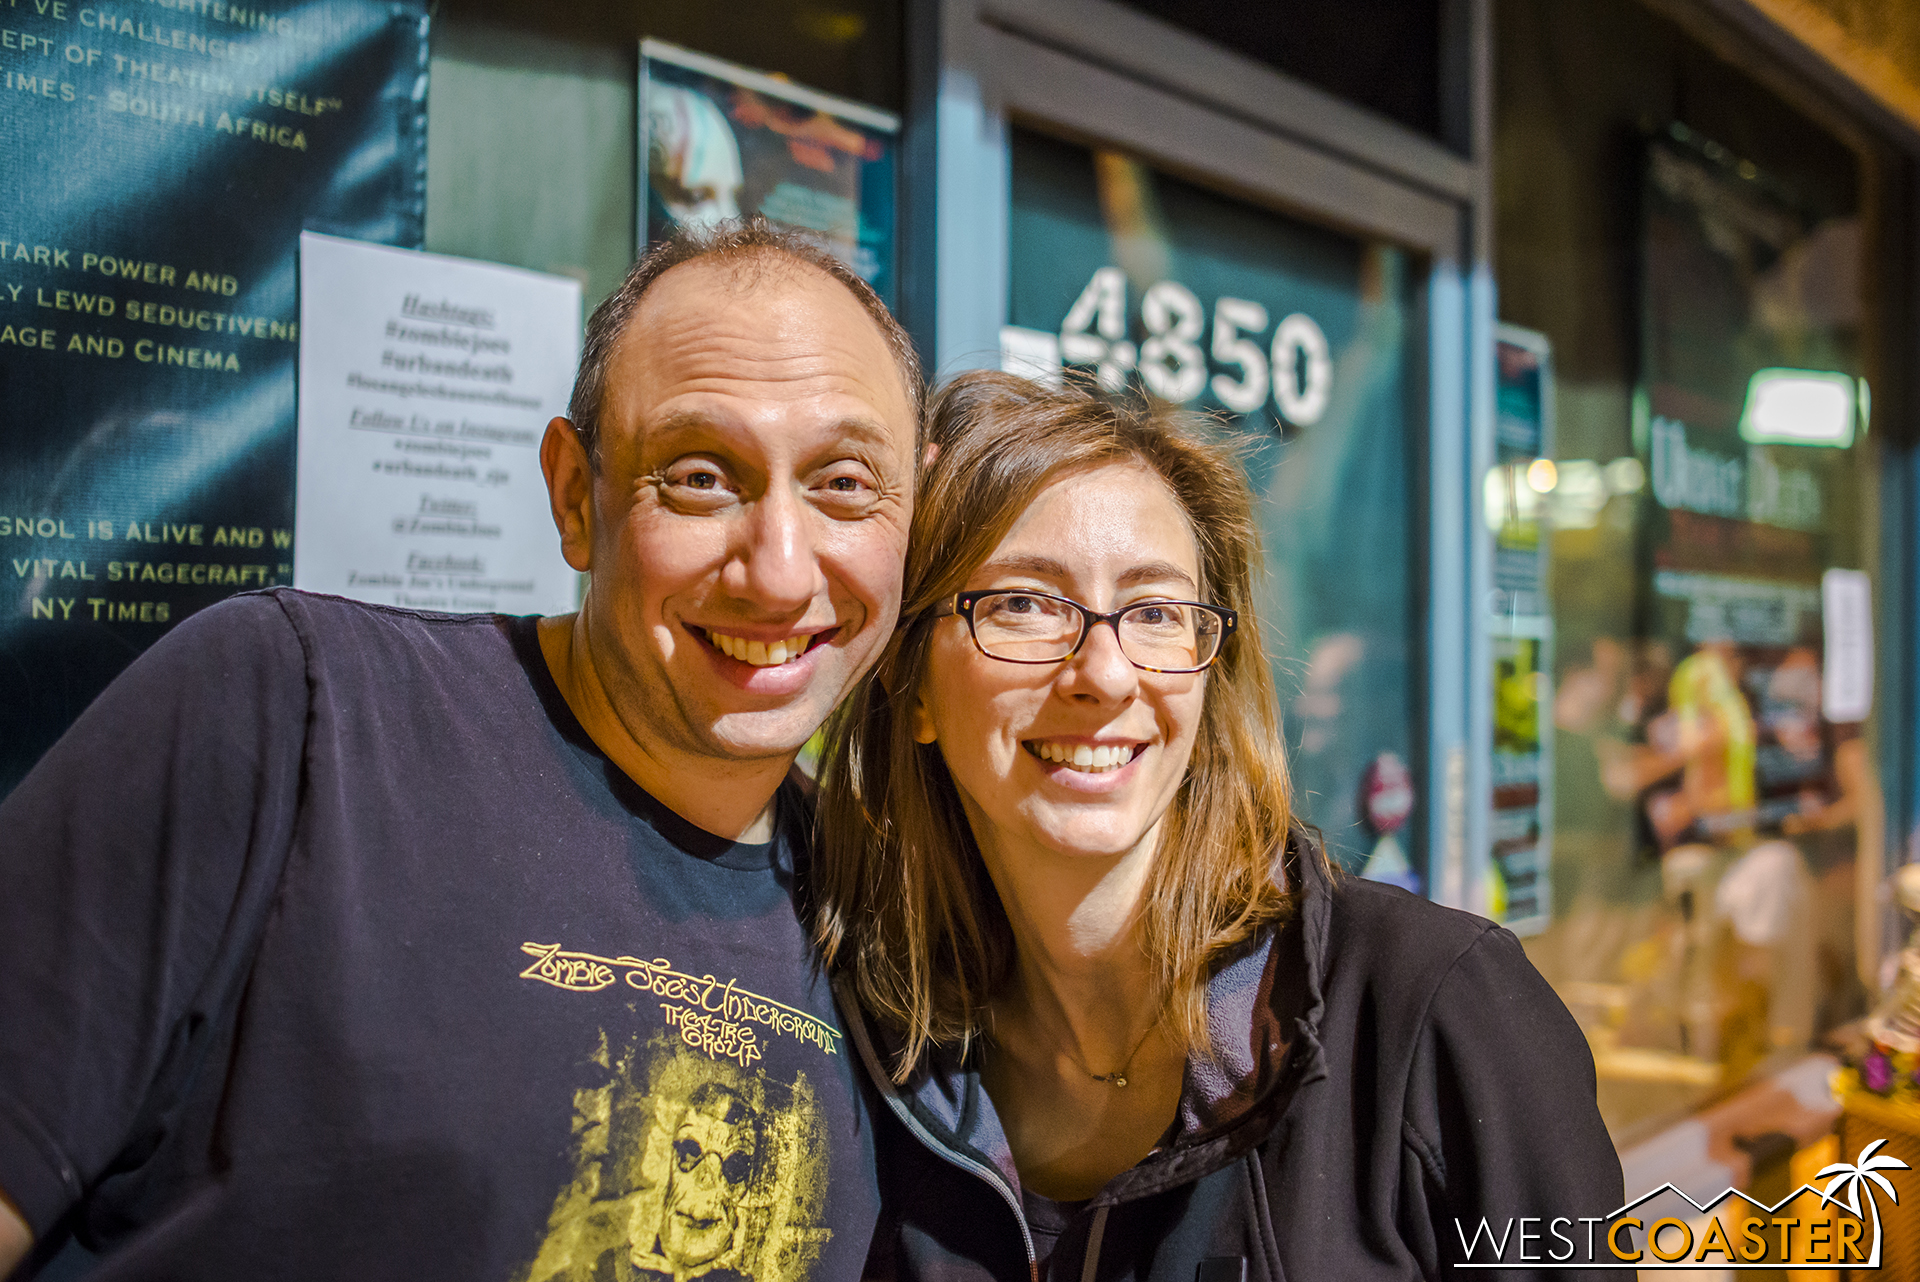 Creators and directors Zombie Joe and Jana Wilmer pose for a photo outside the theater.